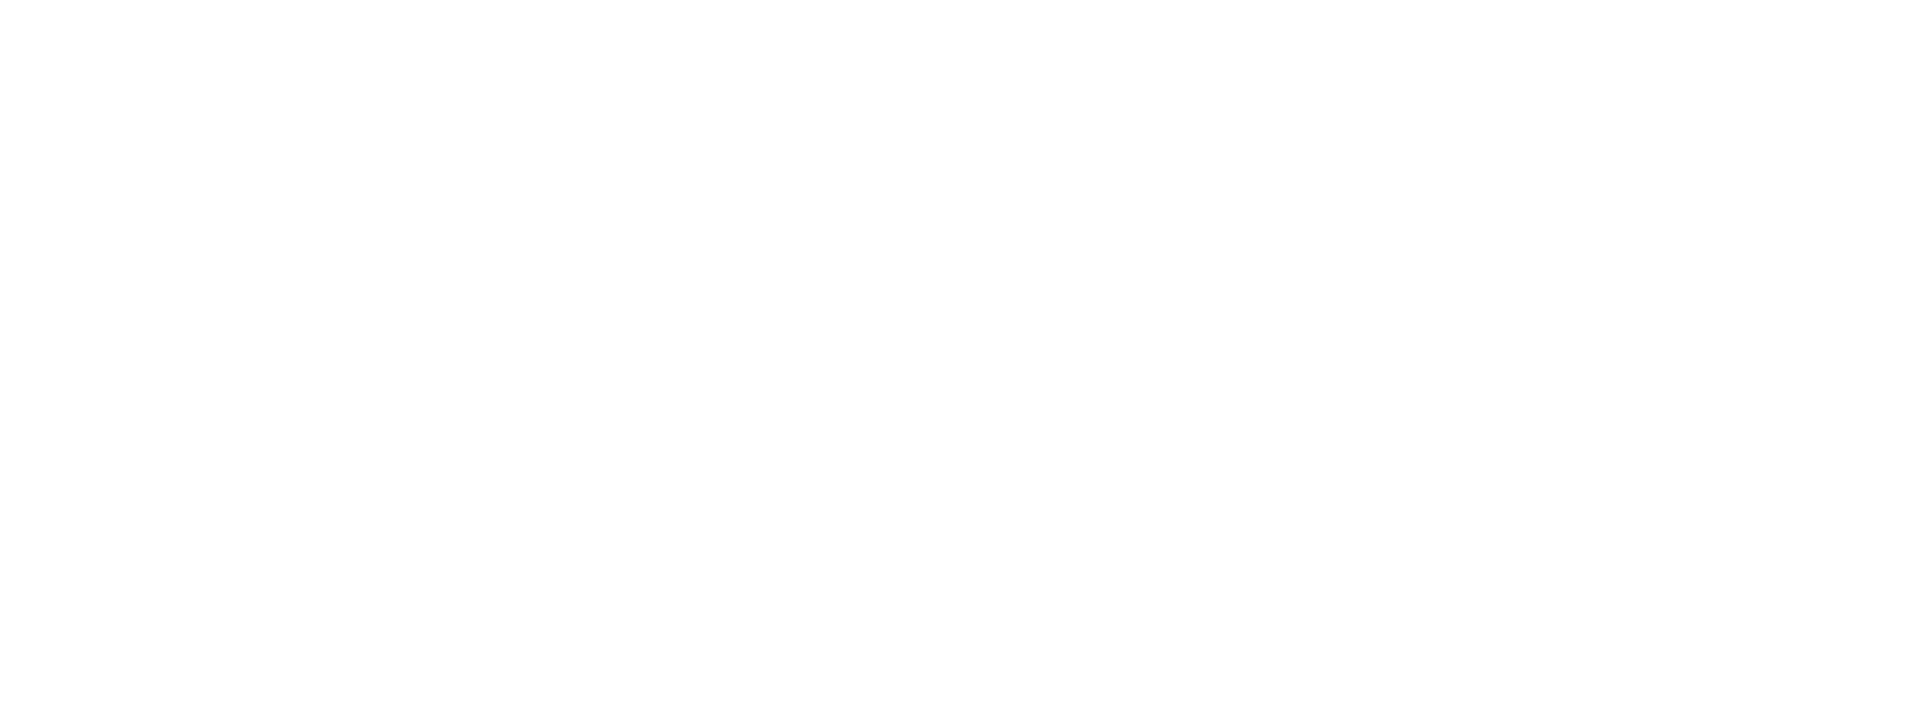 The Know - Know Your Thrones